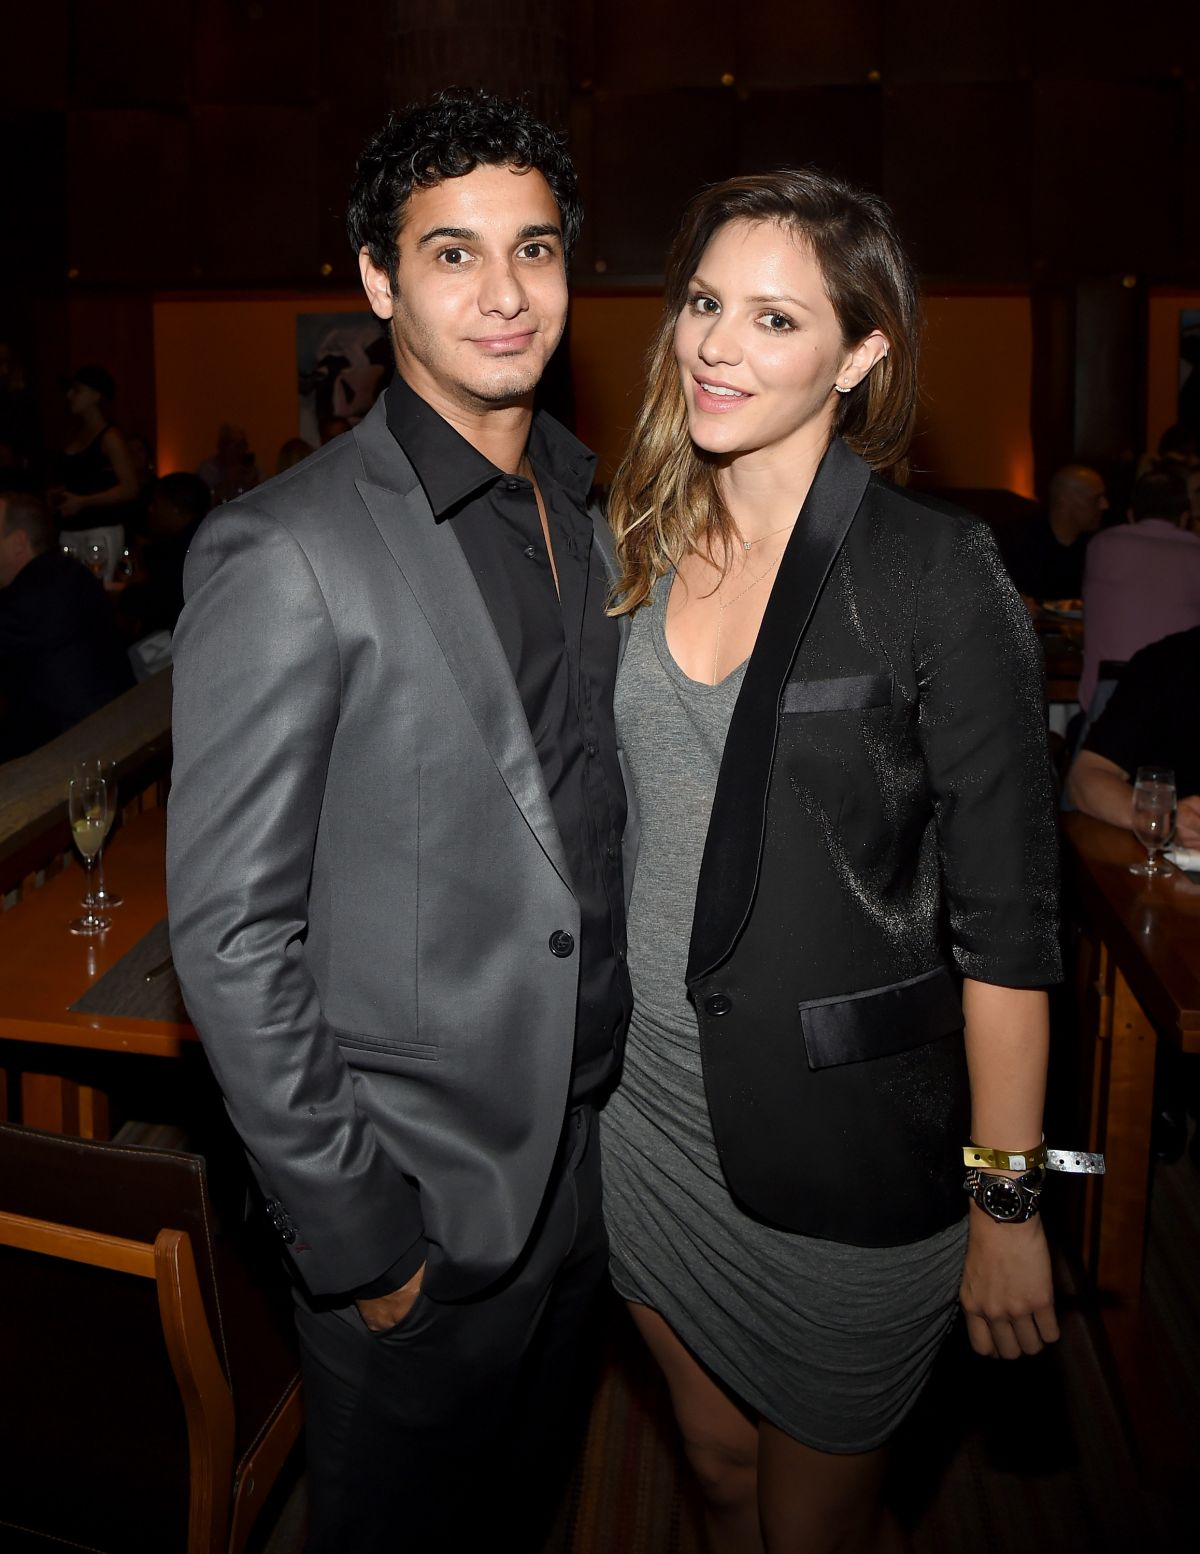 KATHARINE MCPHEE at Showtime VIP Post-fight Dinner for Mayweather vs Pacquiao